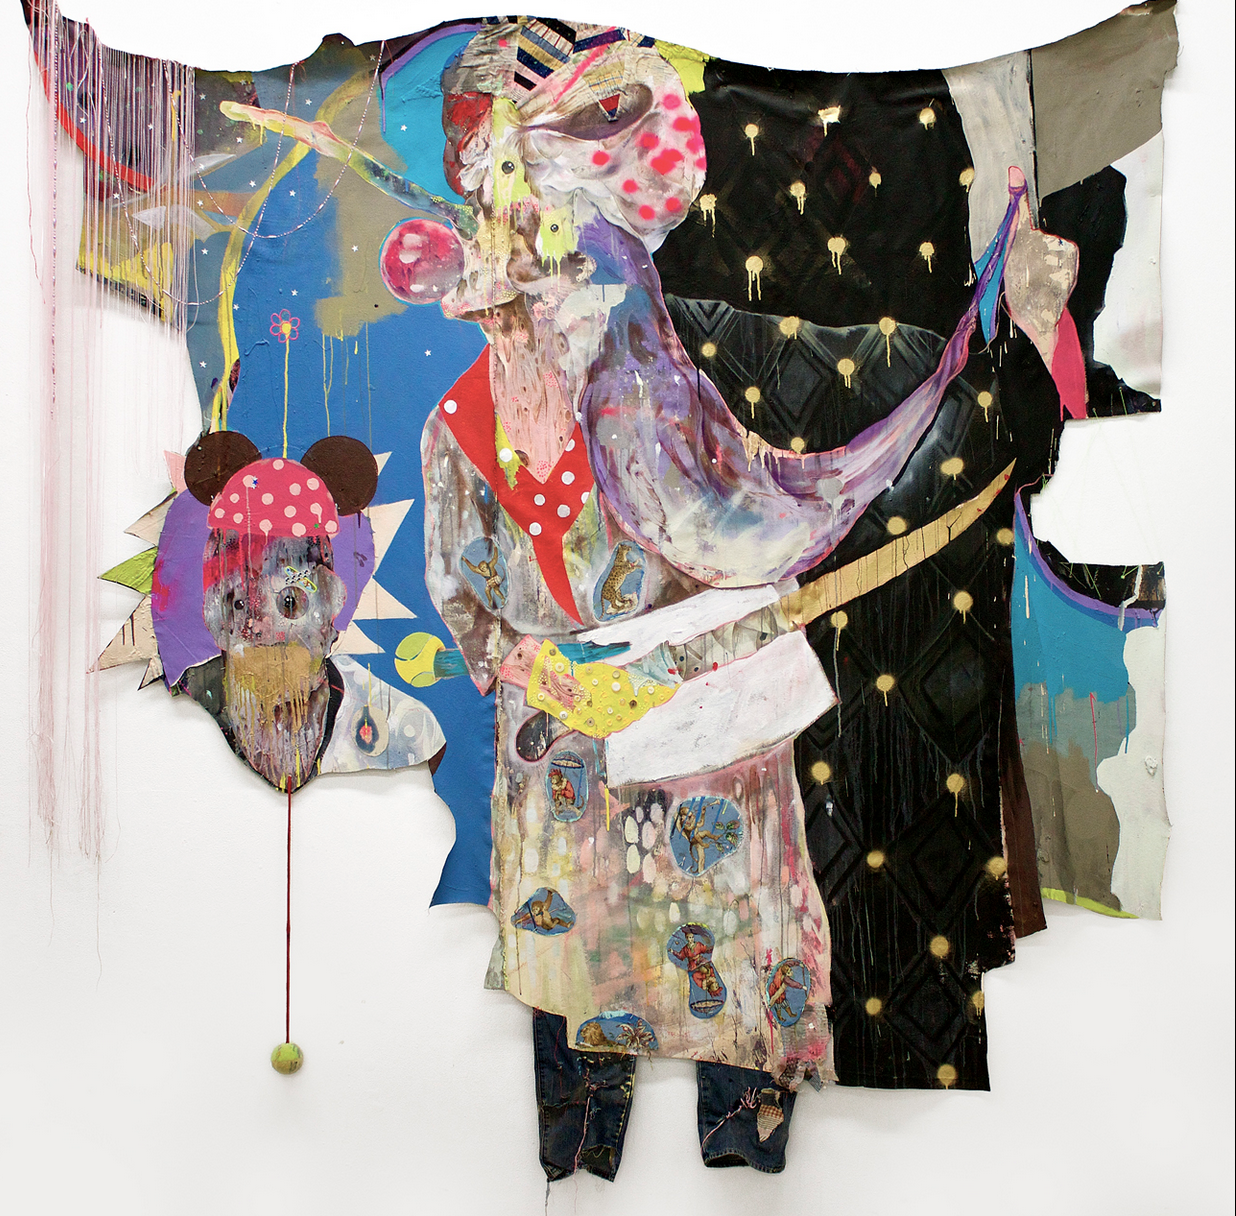 """Lavar Munroe, """"Pinocchio's Half Sister"""" (2014), acrylic, spray paint, latex house paint, fabric paint, tennis ball, rope, buttons, staples, Band-Aids, jeans, thread, and found fabric on cut canvas (image courtesy of the artist and NOMAD Gallery, Brussels, Belgium)"""